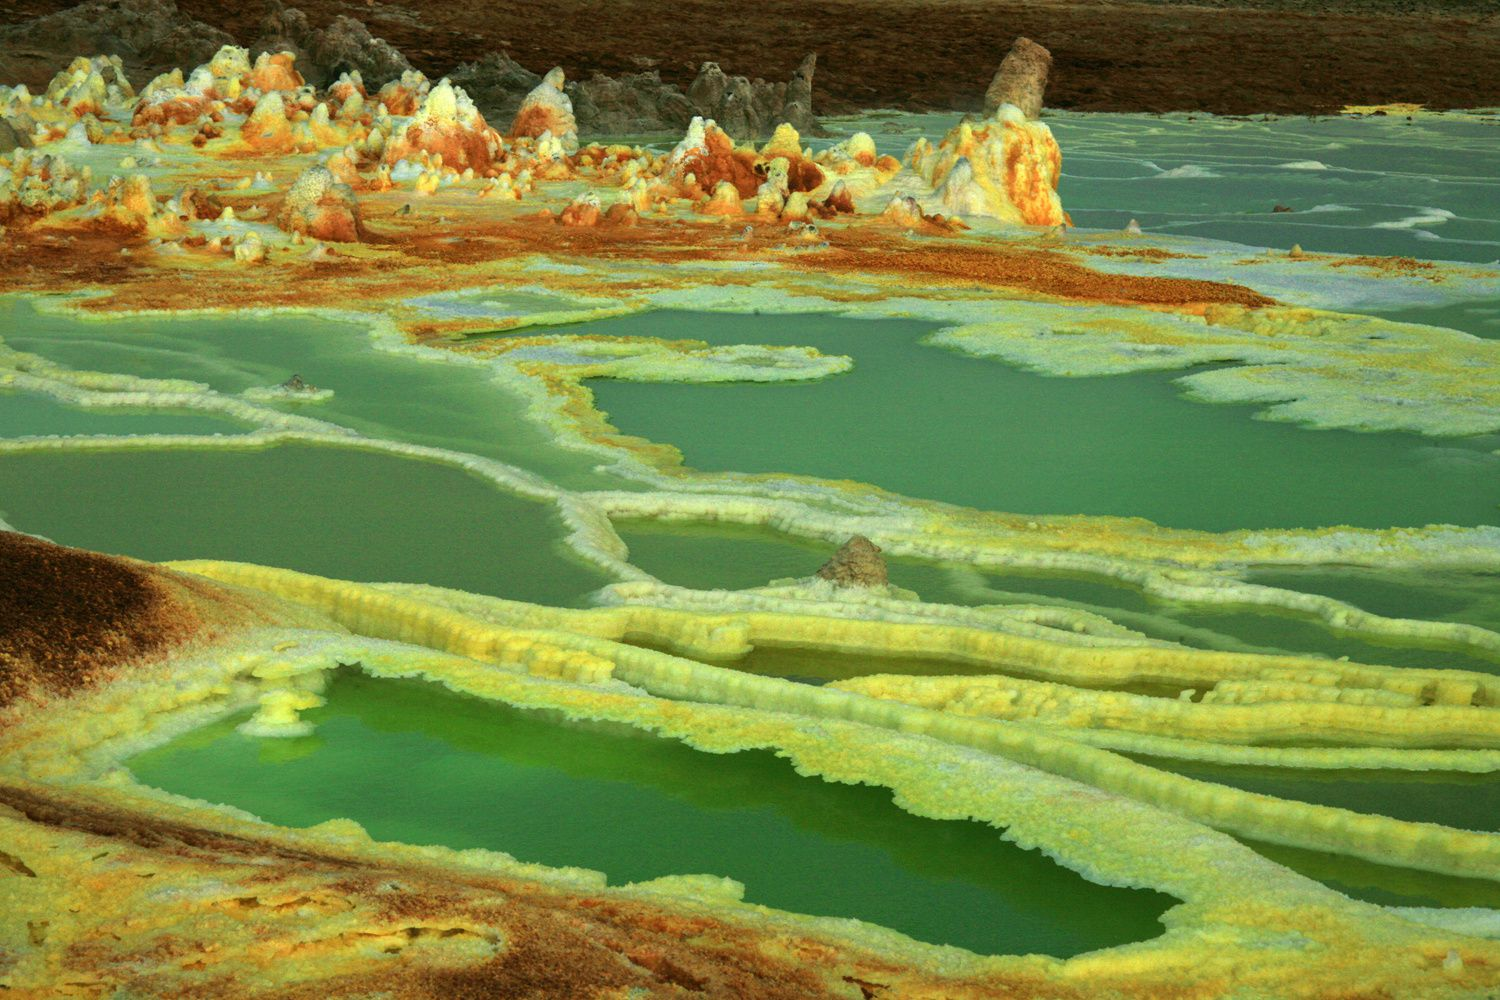 Dallol, acid lakes surrounded by sulfur concretions - adventure and volcanoes expedition 2007 / Photo © Bernard Duyck